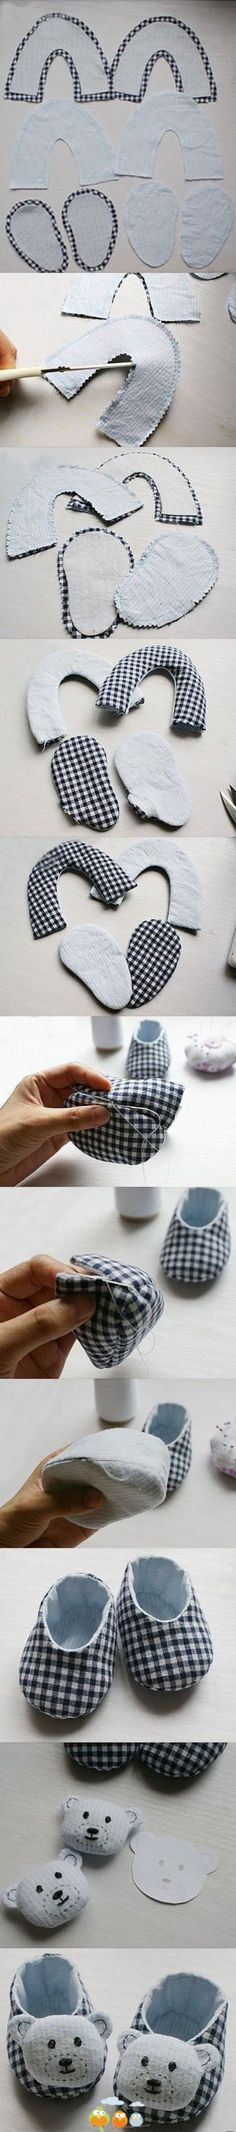 We are going to show you some amazing ideas to craft the DIY baby shoes of your own. So check out these DIY baby shoes free patterns and tutorials to Baby Patterns, Doll Patterns, Sewing Patterns, Fabric Crafts, Sewing Crafts, Sewing Projects, Sewing For Kids, Baby Sewing, Shoe Pattern